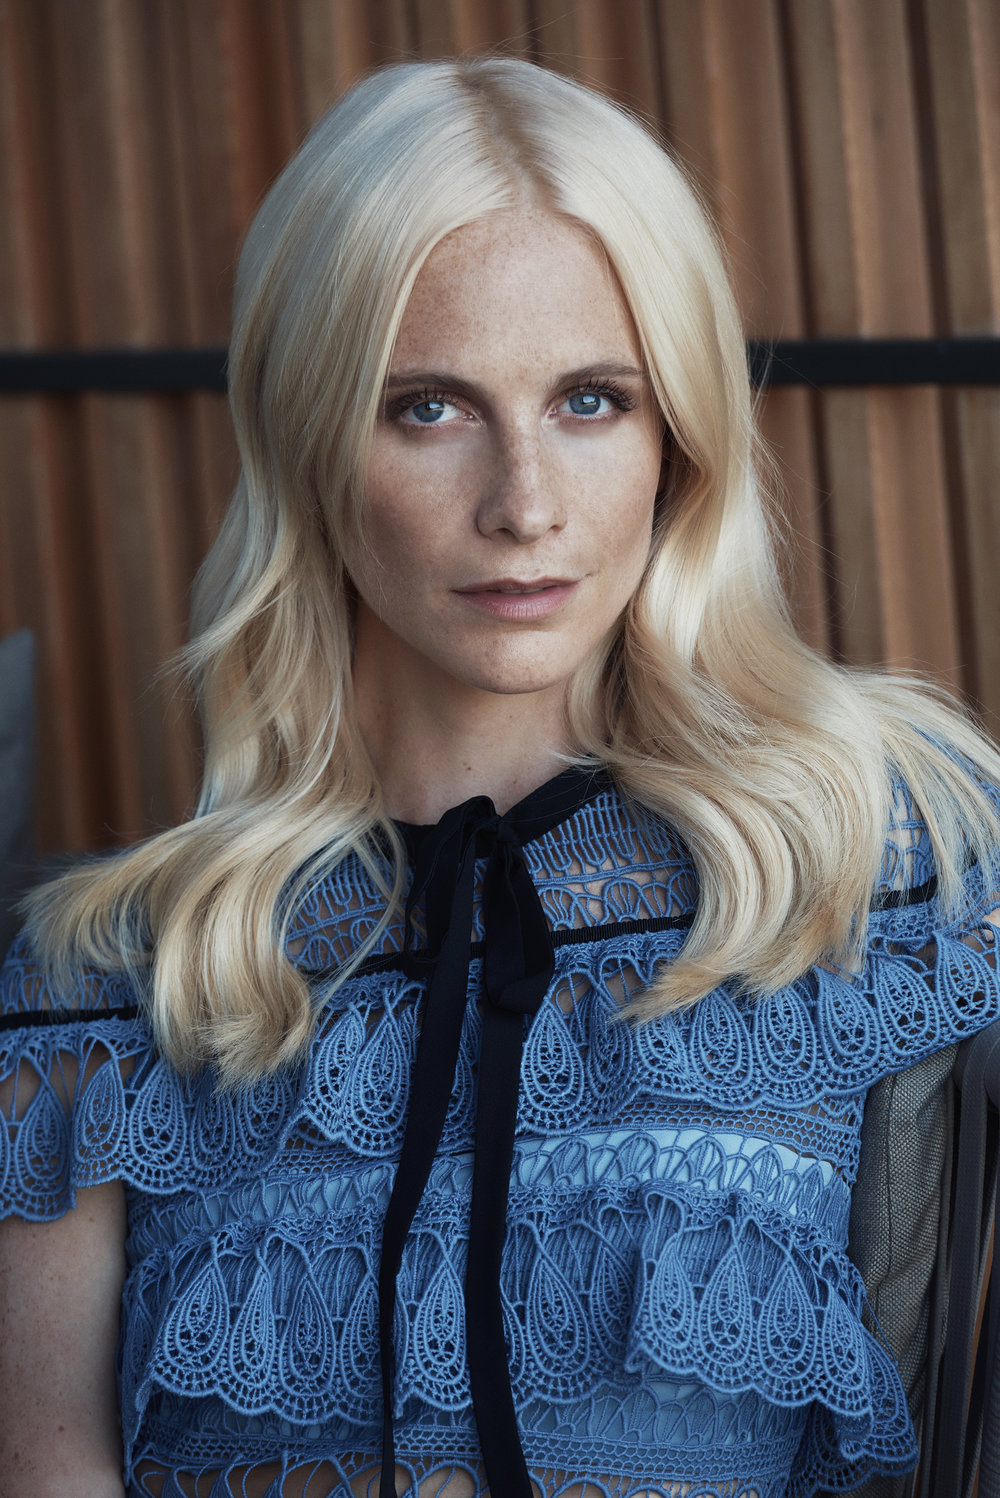 AIR FRANCE MADAME  - Poppy Delevingne